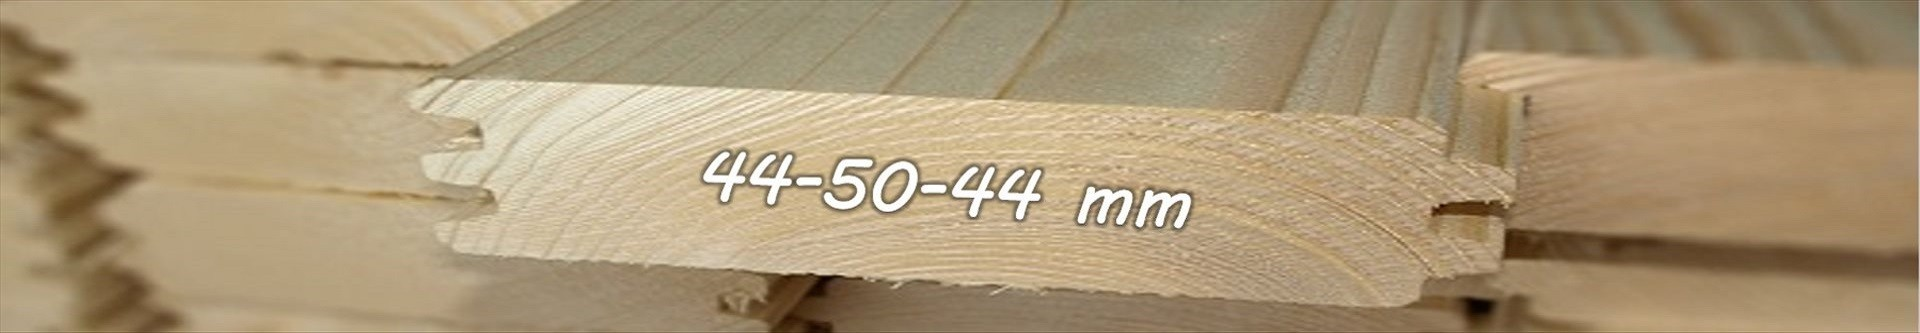 Casas de madera Doble pared | Grosor 44-50-44mm